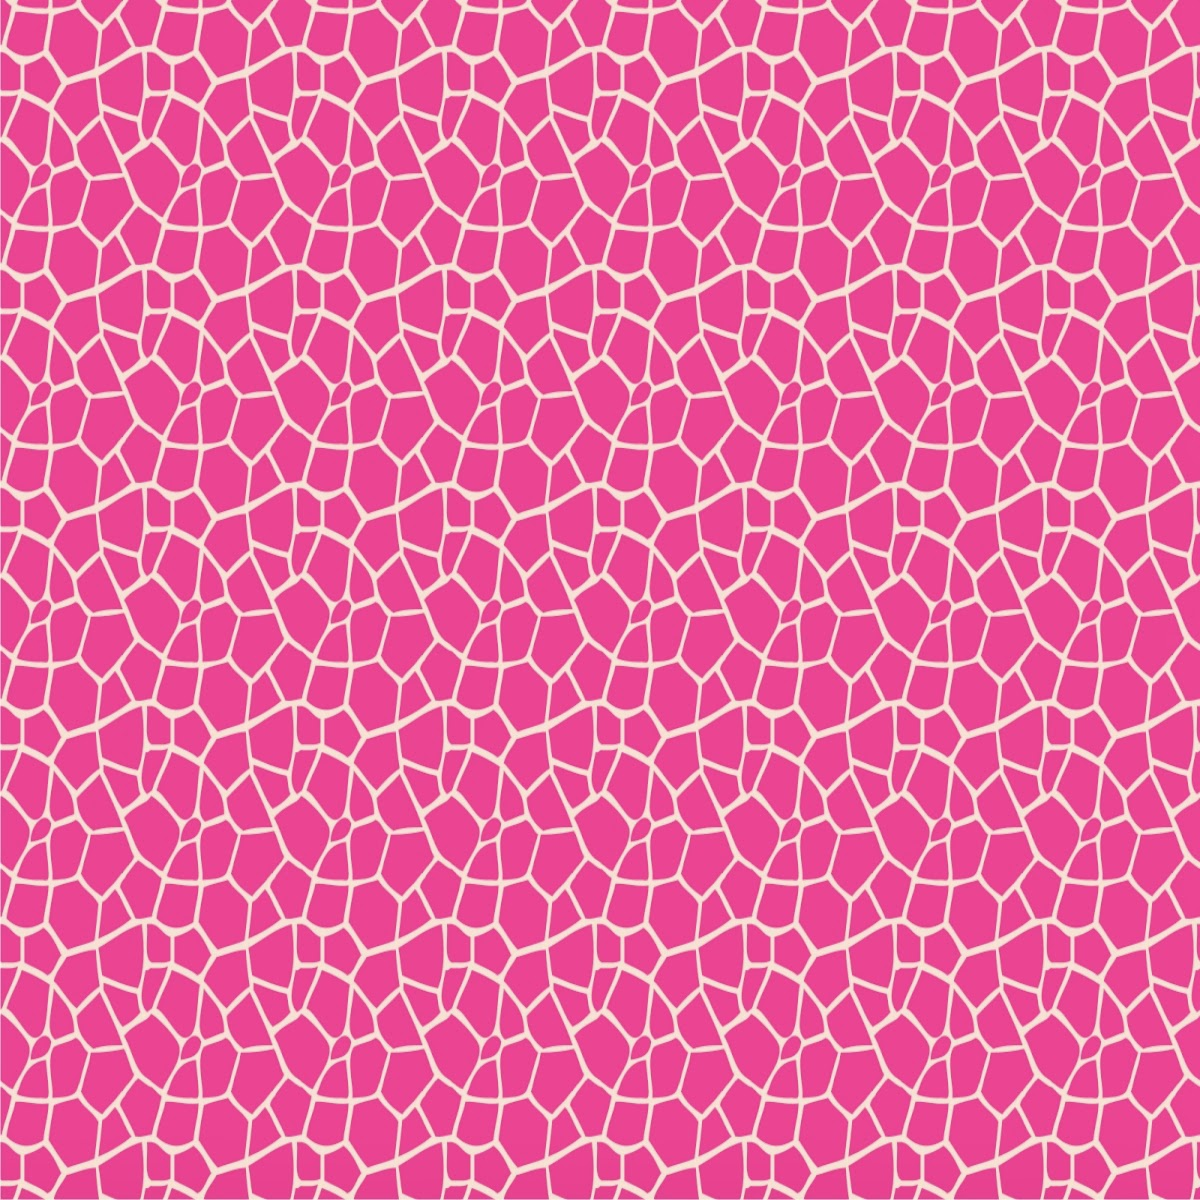 scrapbook paper animal print estos 2 papeles digitales de animal print los puedes descargar aqui - Animal Pictures To Print Free